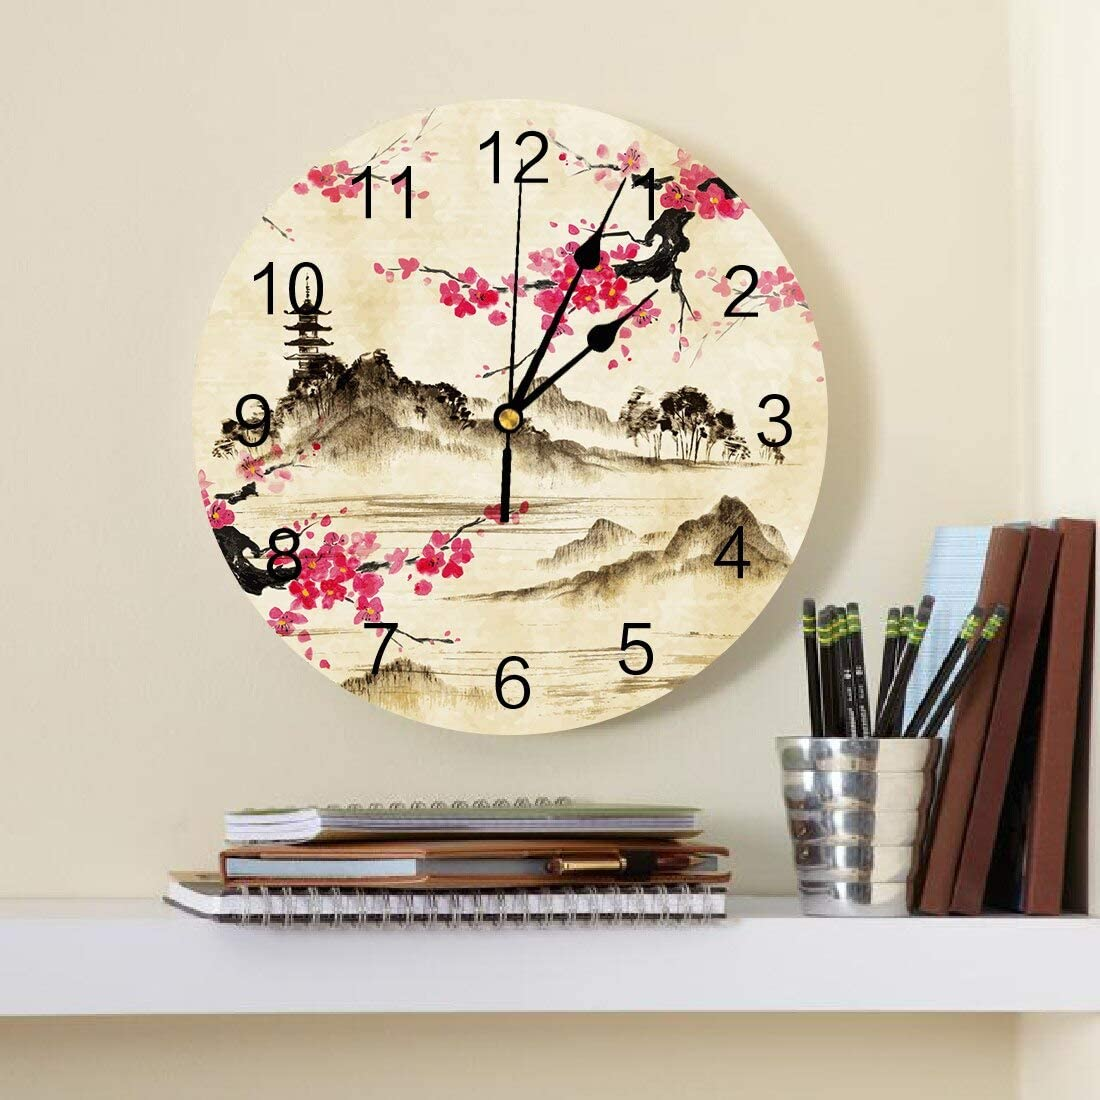 Vintage Wall Clocks Safety and trust Battery Operated Max 46% OFF Silent Retro Non Ticking -